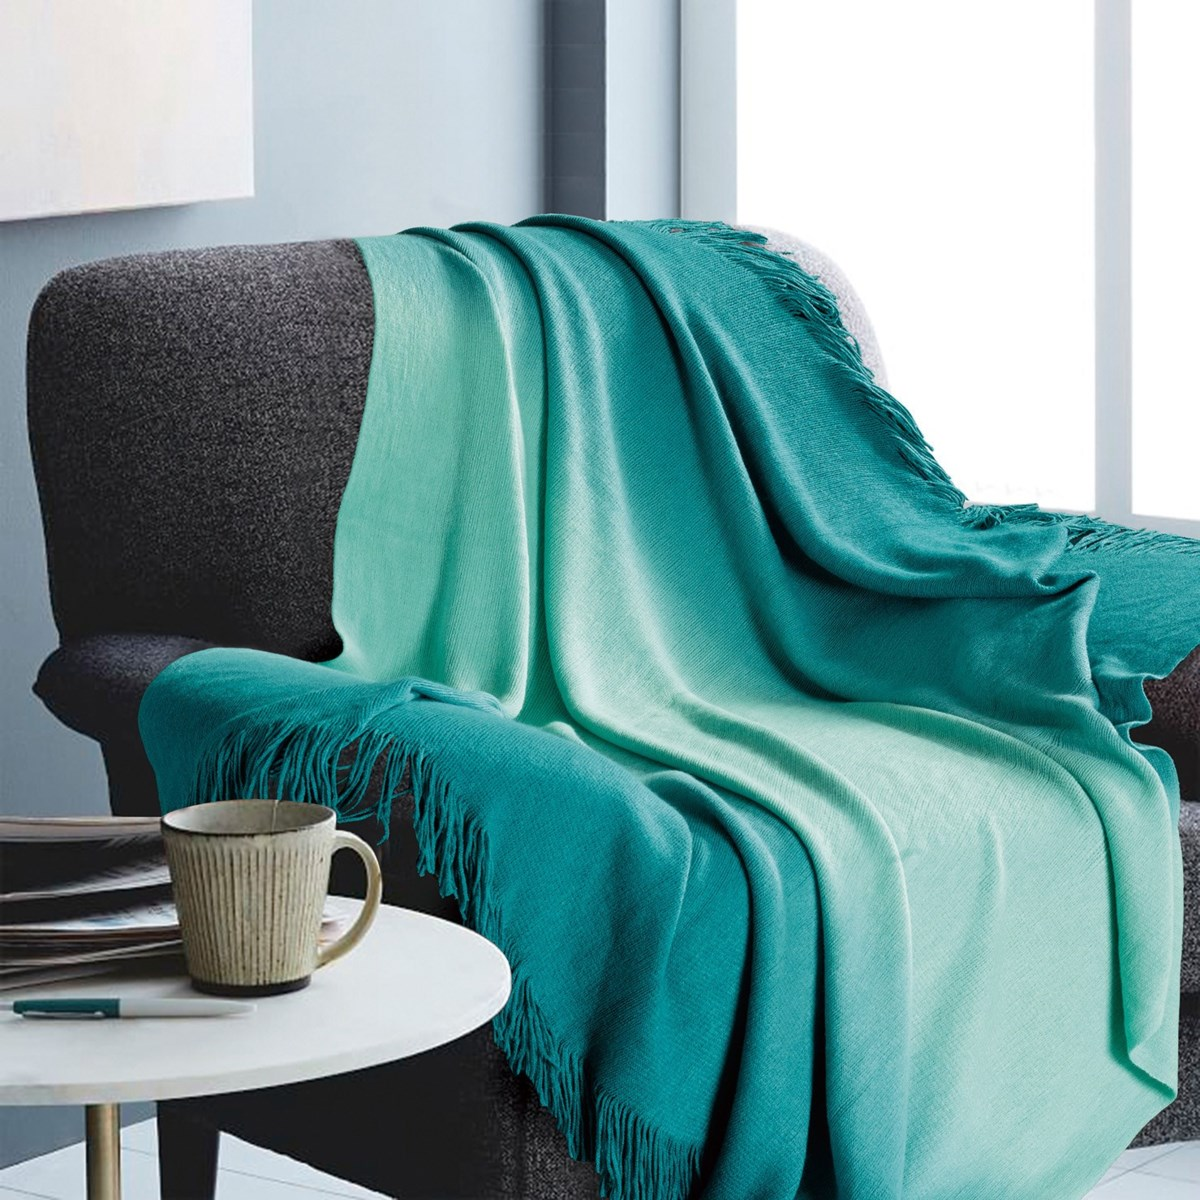 Ombre Teal Throw 50x60